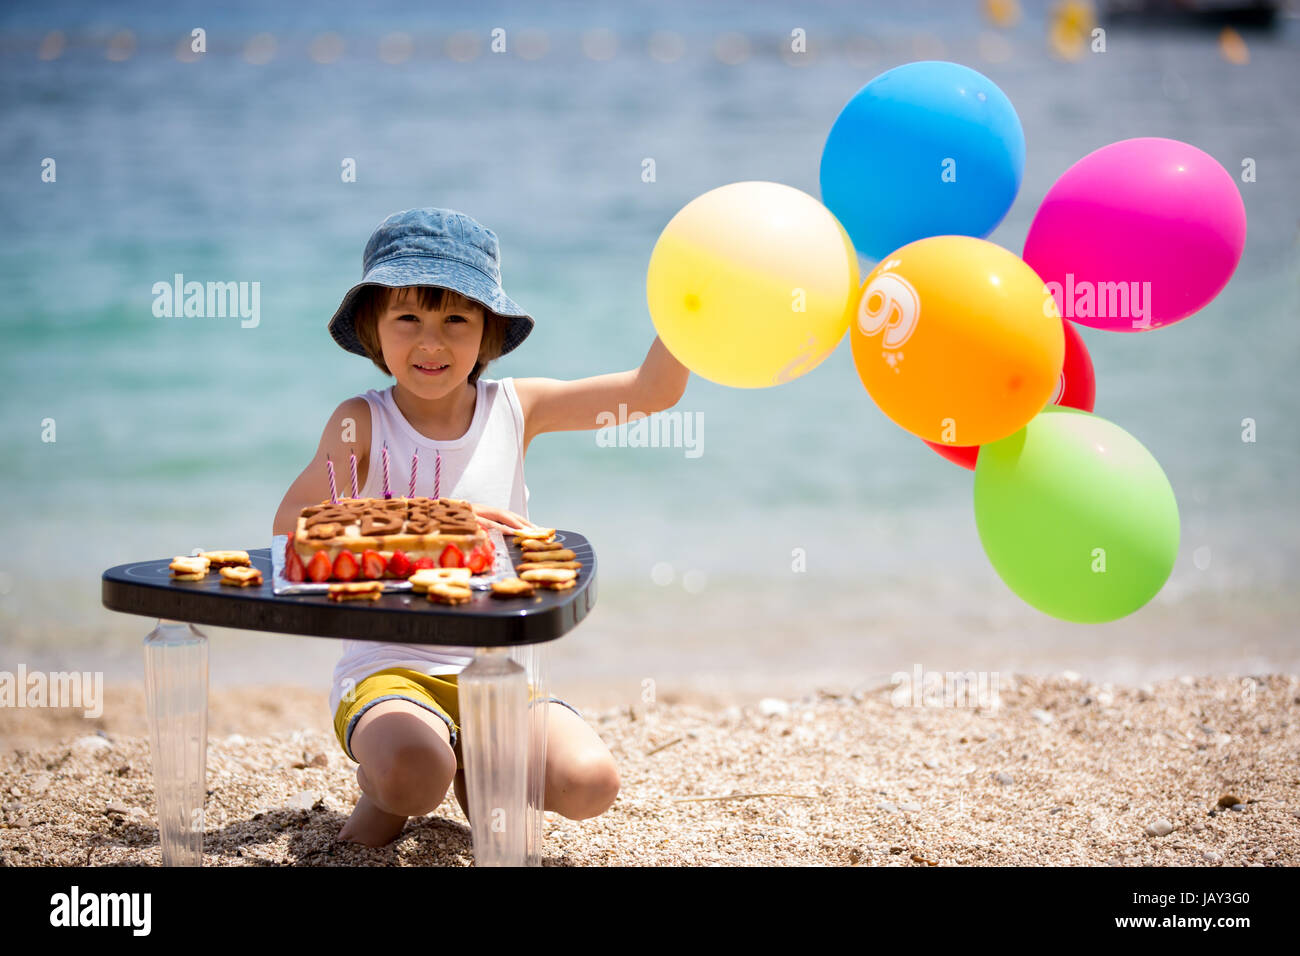 Sweet little child, boy, celebrating his sixth birthday on the beach, cake, balloons, candles, cookies. Childhood - Stock Image